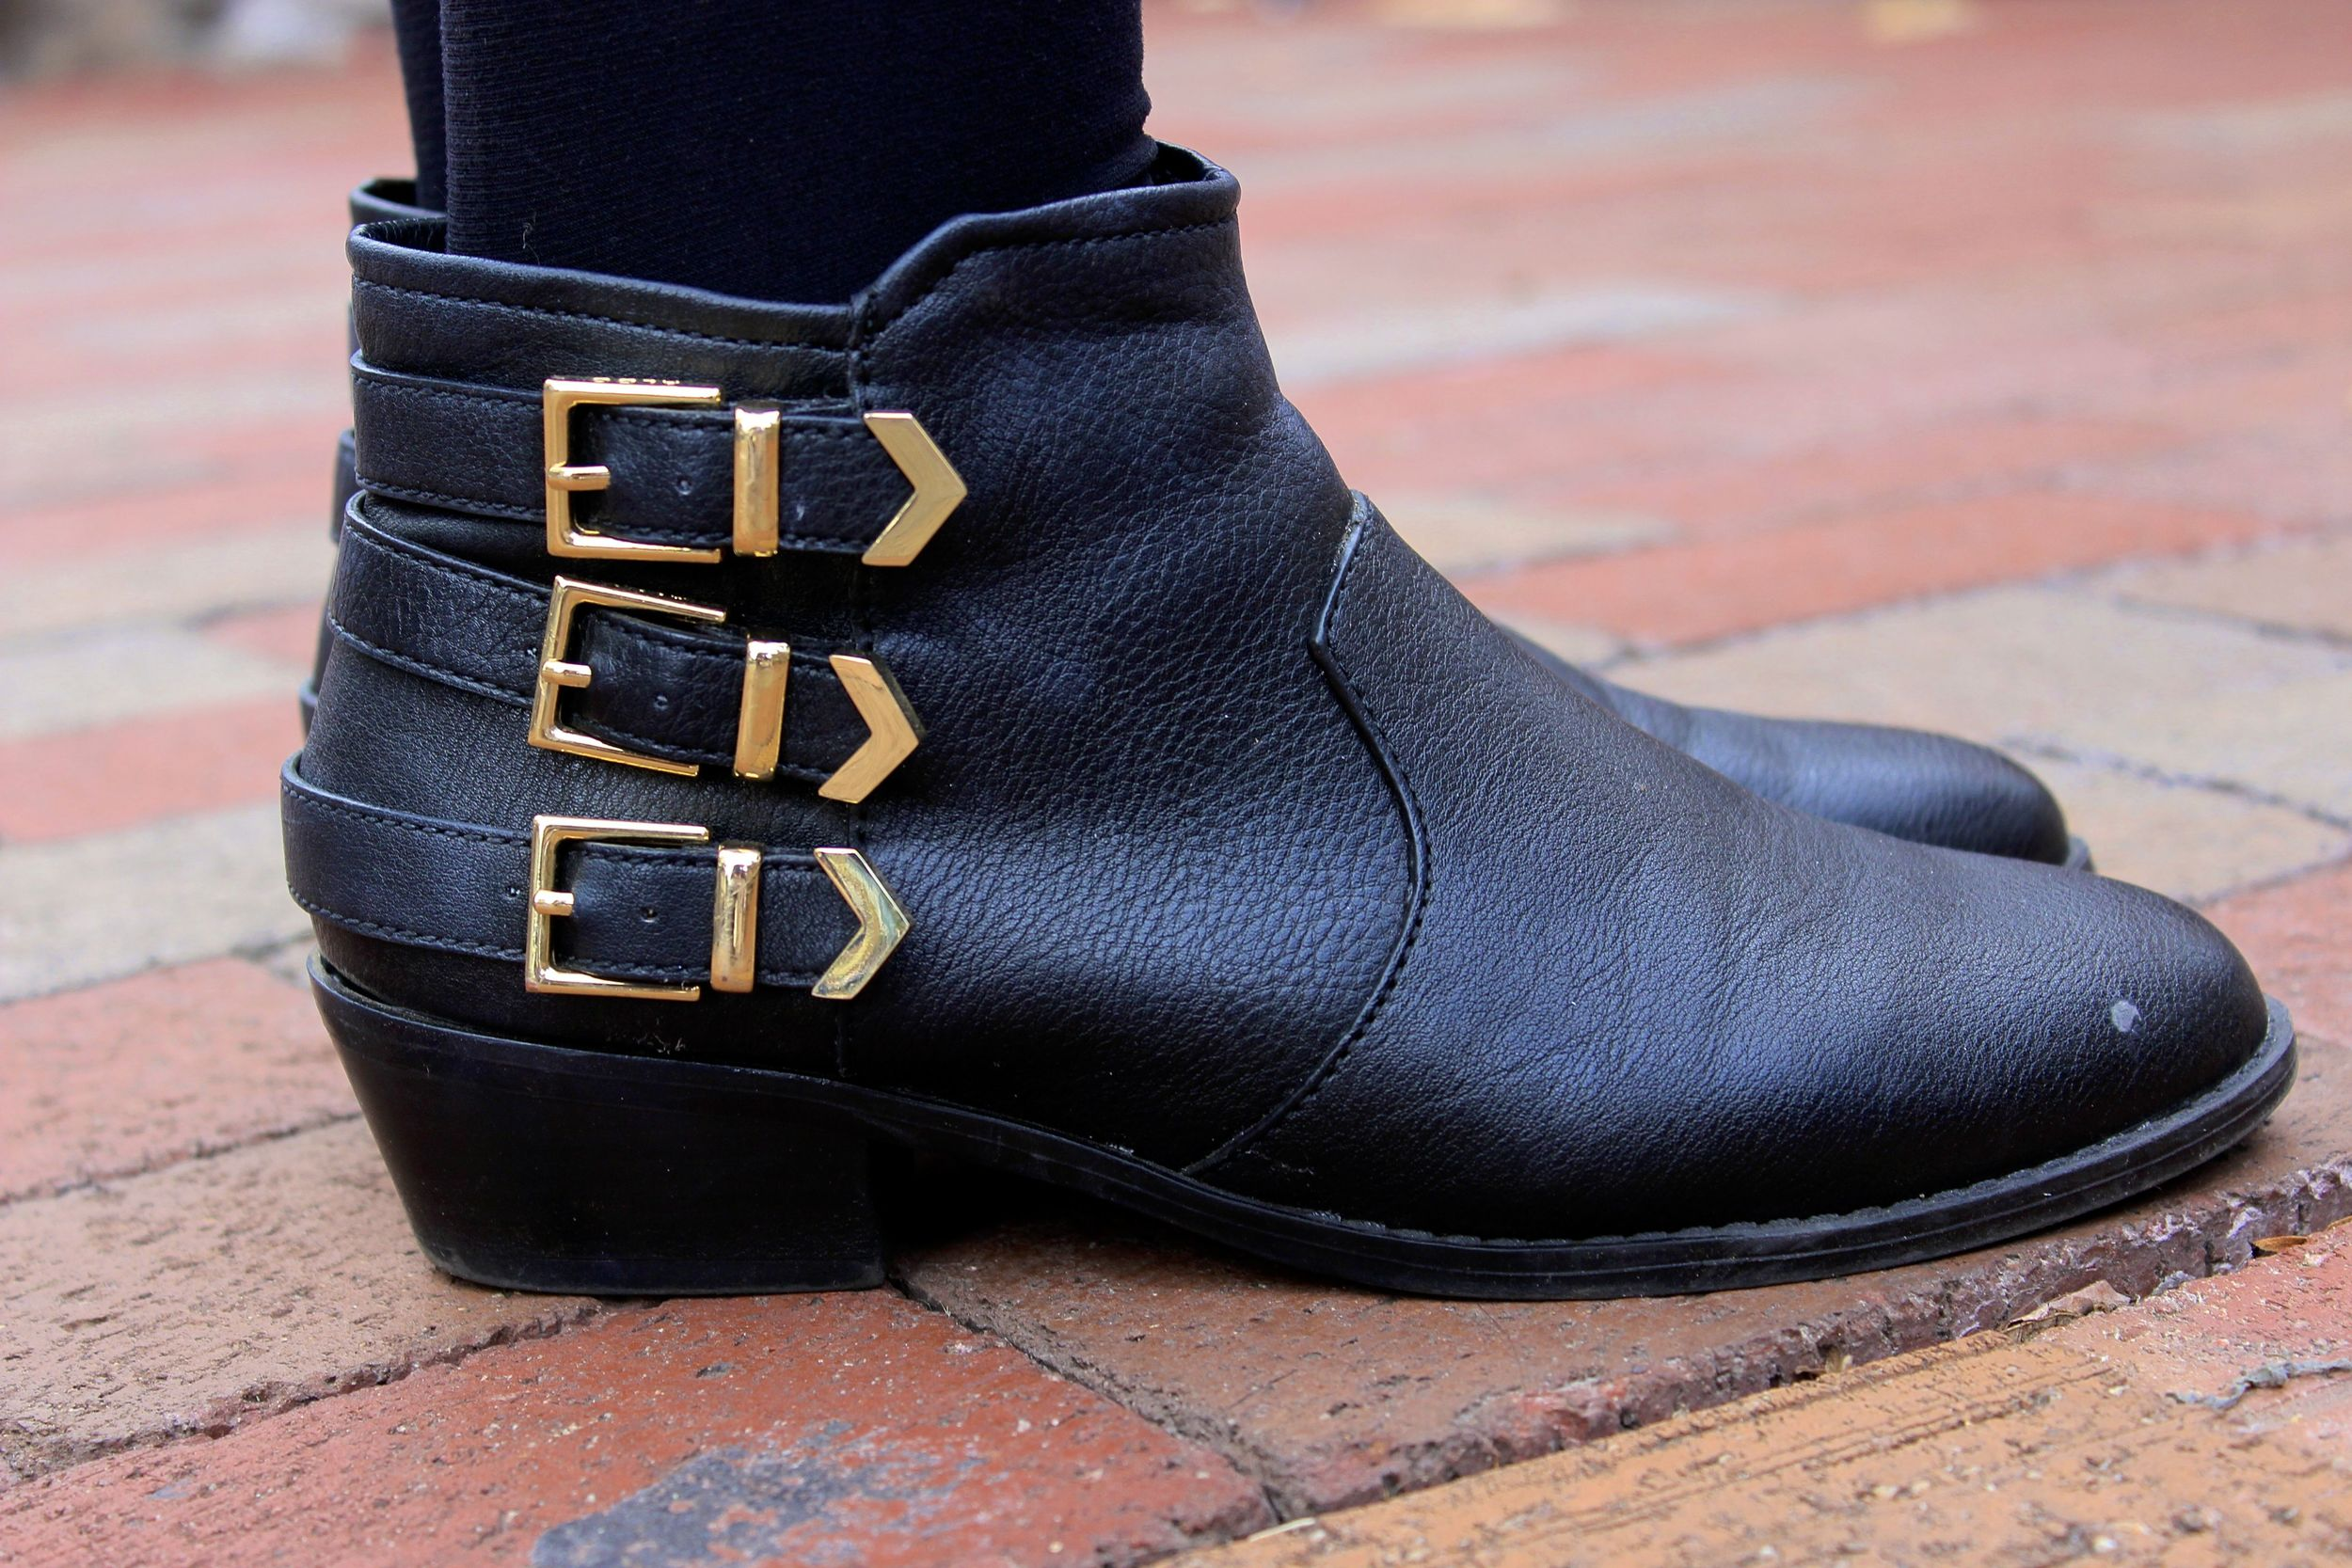 Black Leather booties with golden buckles. College University style